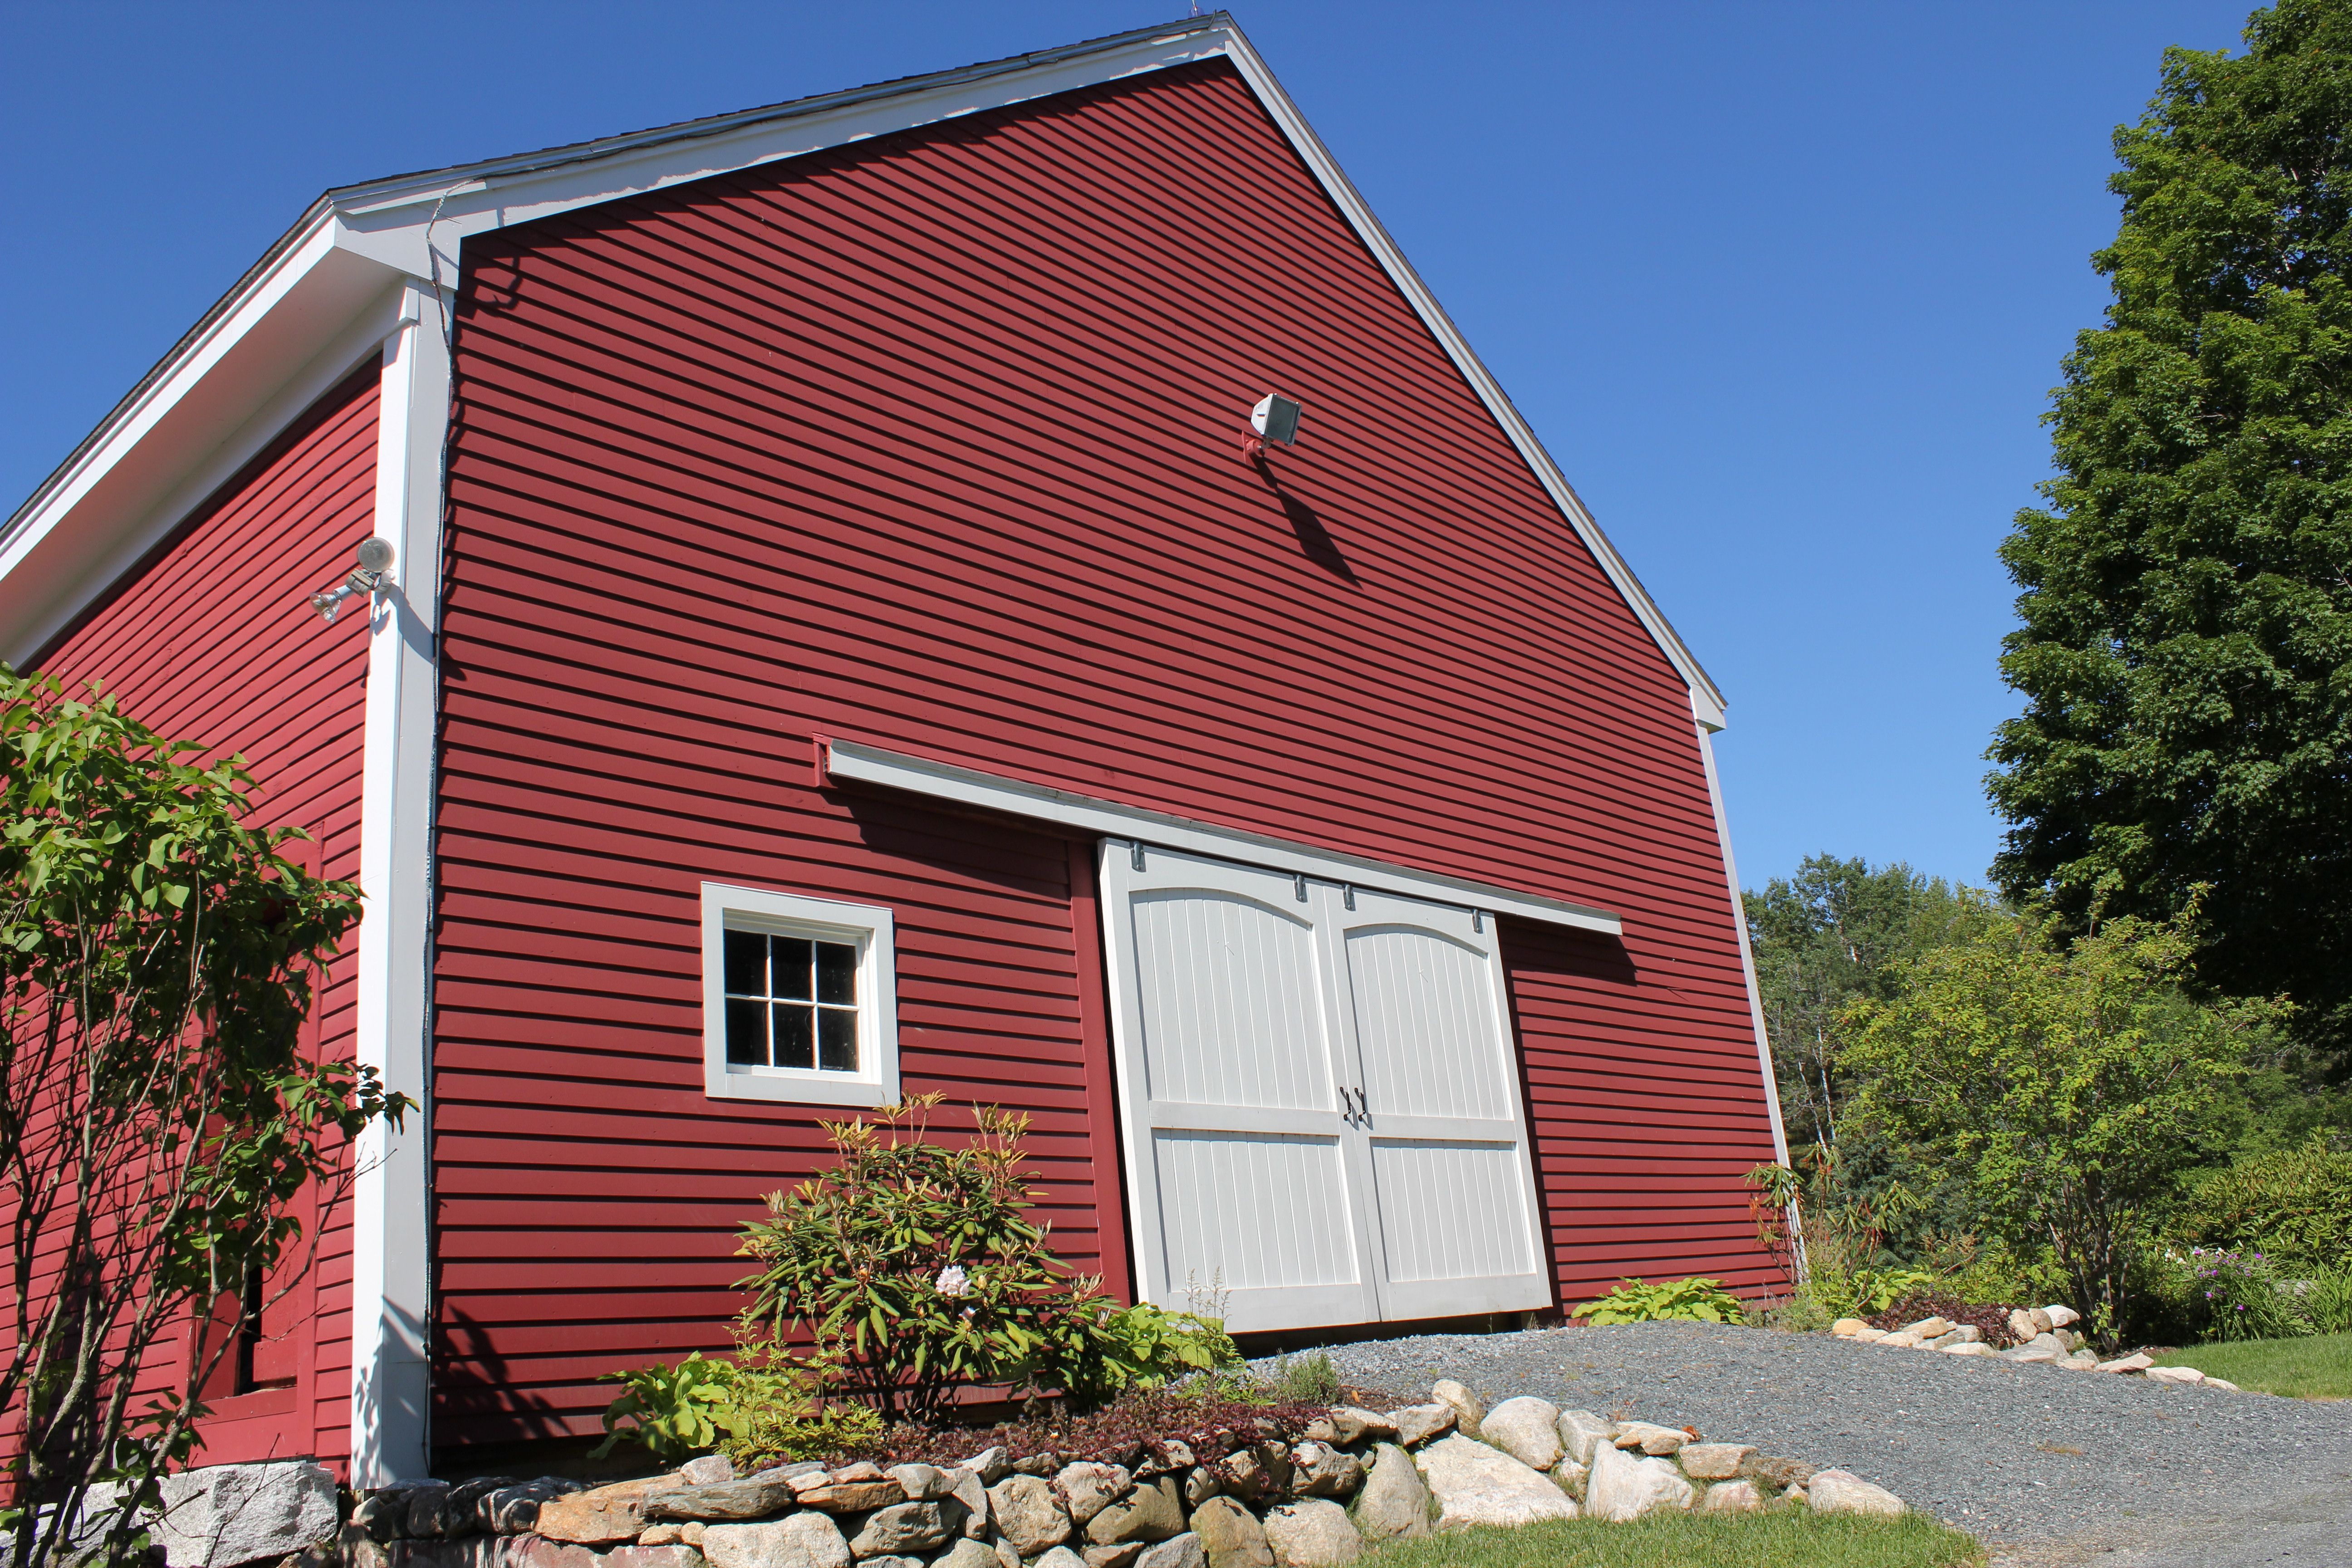 New england red barn photography pinterest for New england barns for sale